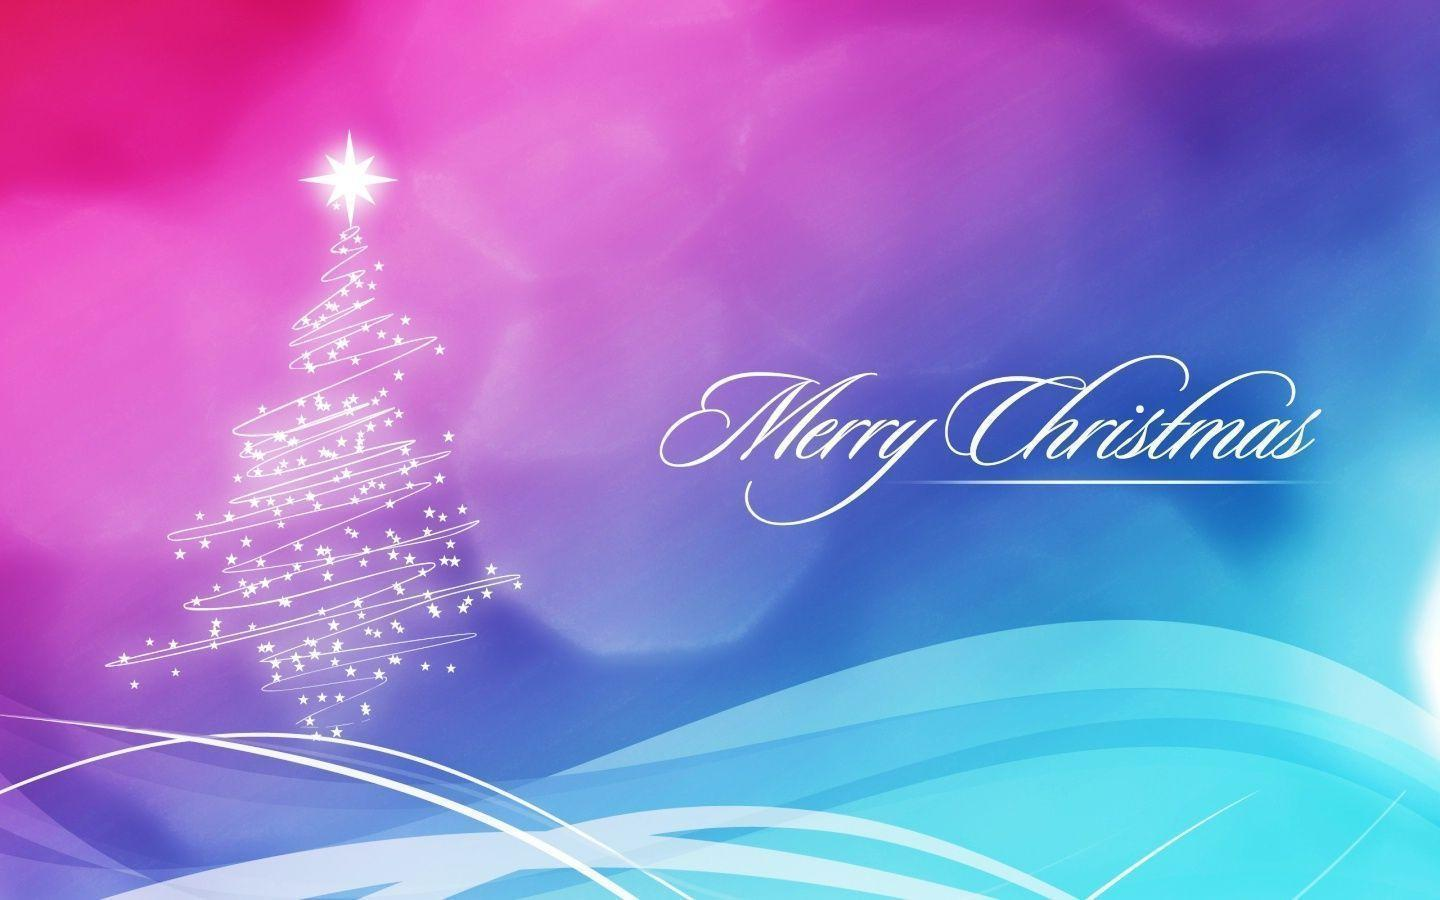 Christmas Background Images Hd.Pink Christmas Wallpapers Wallpaper Cave